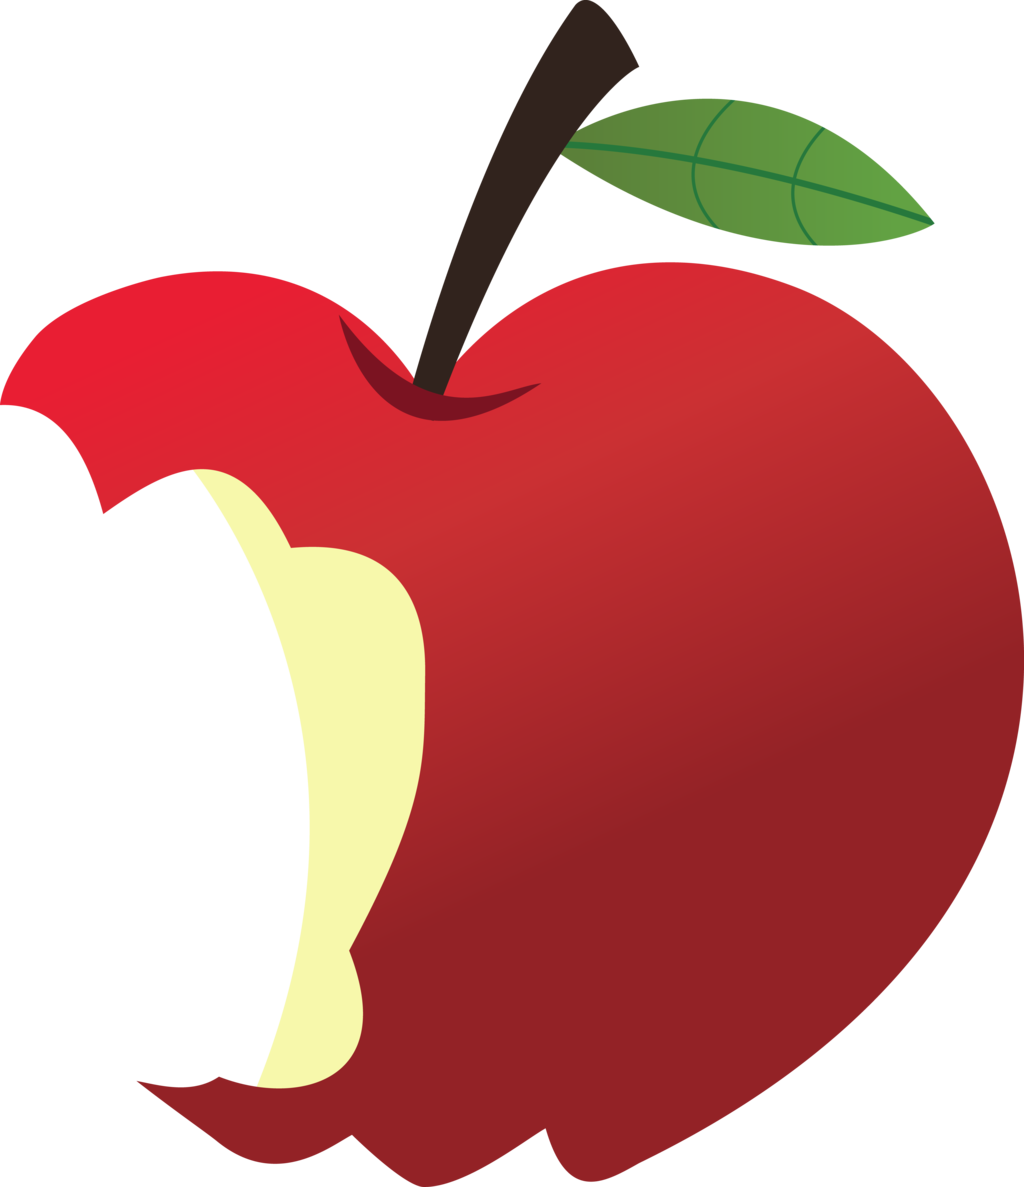 Book apple clipart graphic Bitten Apple Clipart - Imagens de clip art gratuitas | PINTURA EM ... graphic